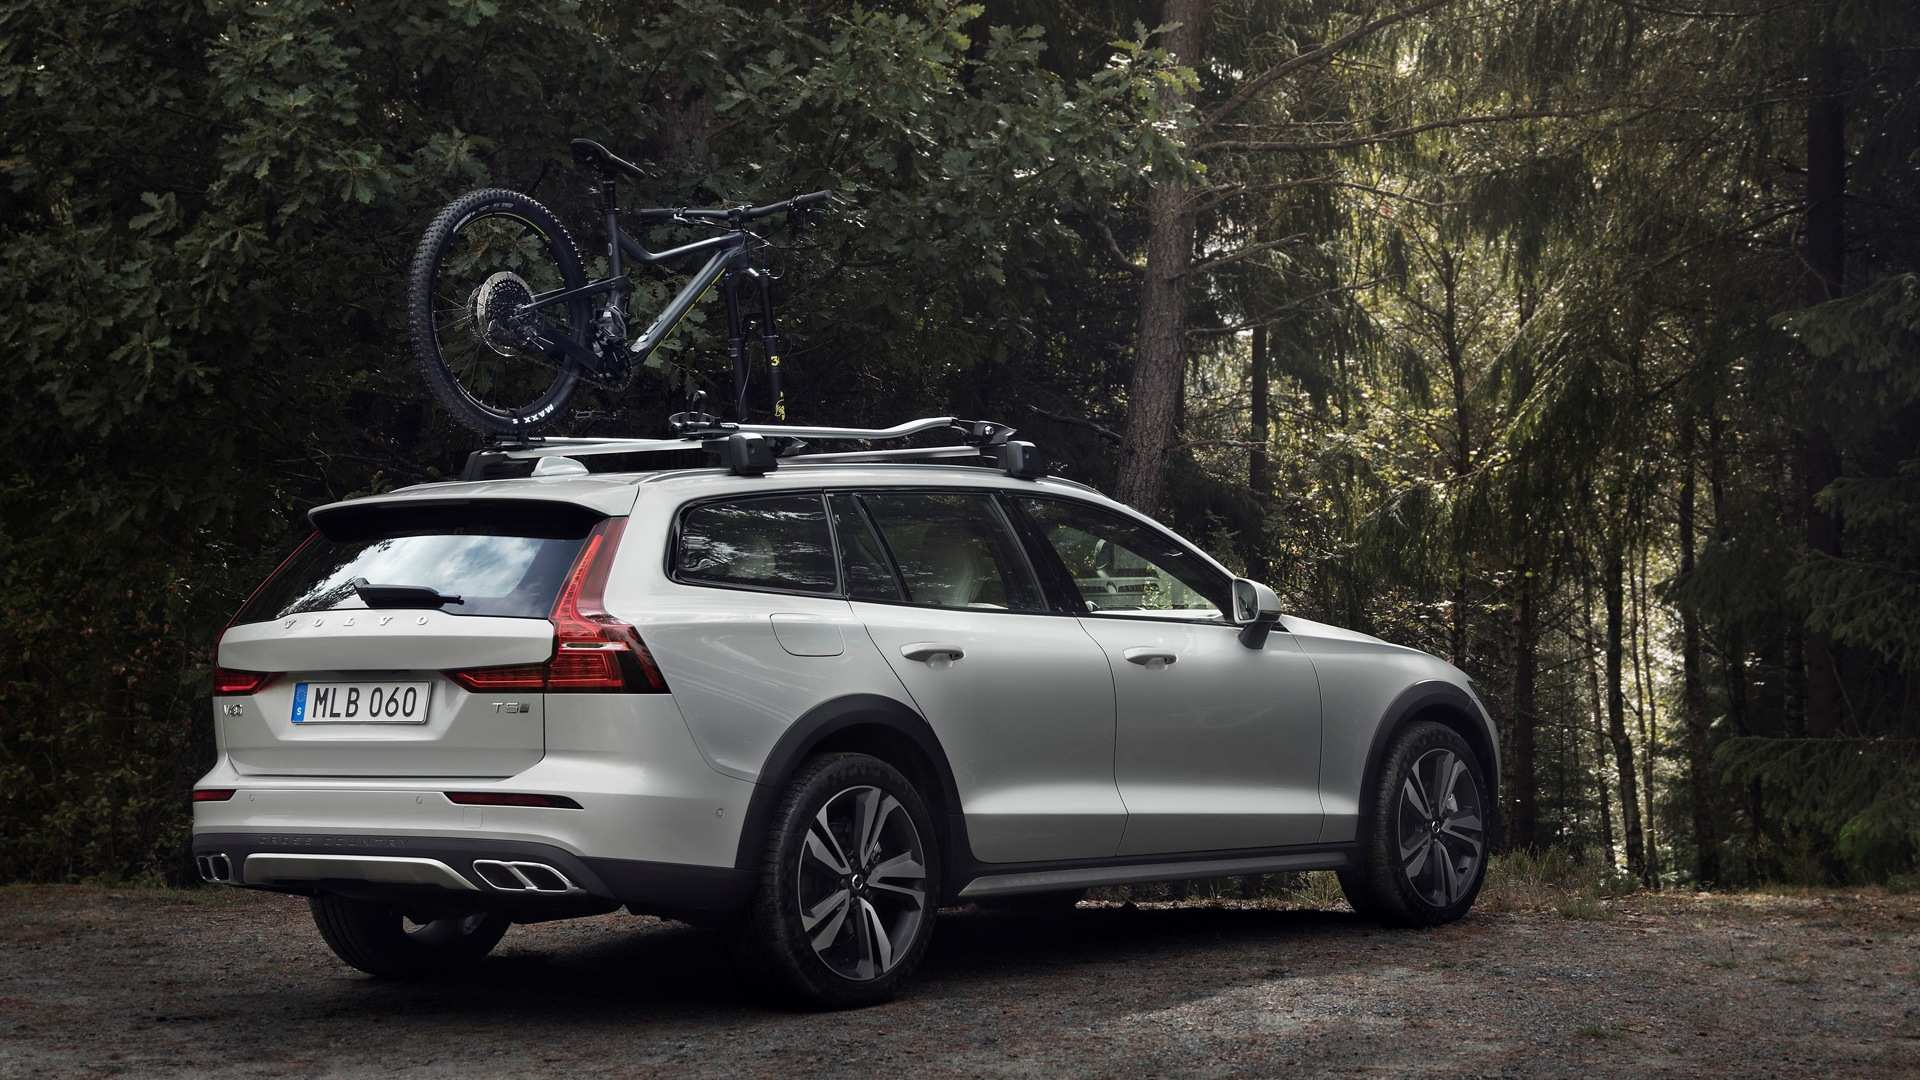 98 Gallery of 2020 Volvo V60 Cross Country Research New by 2020 Volvo V60 Cross Country